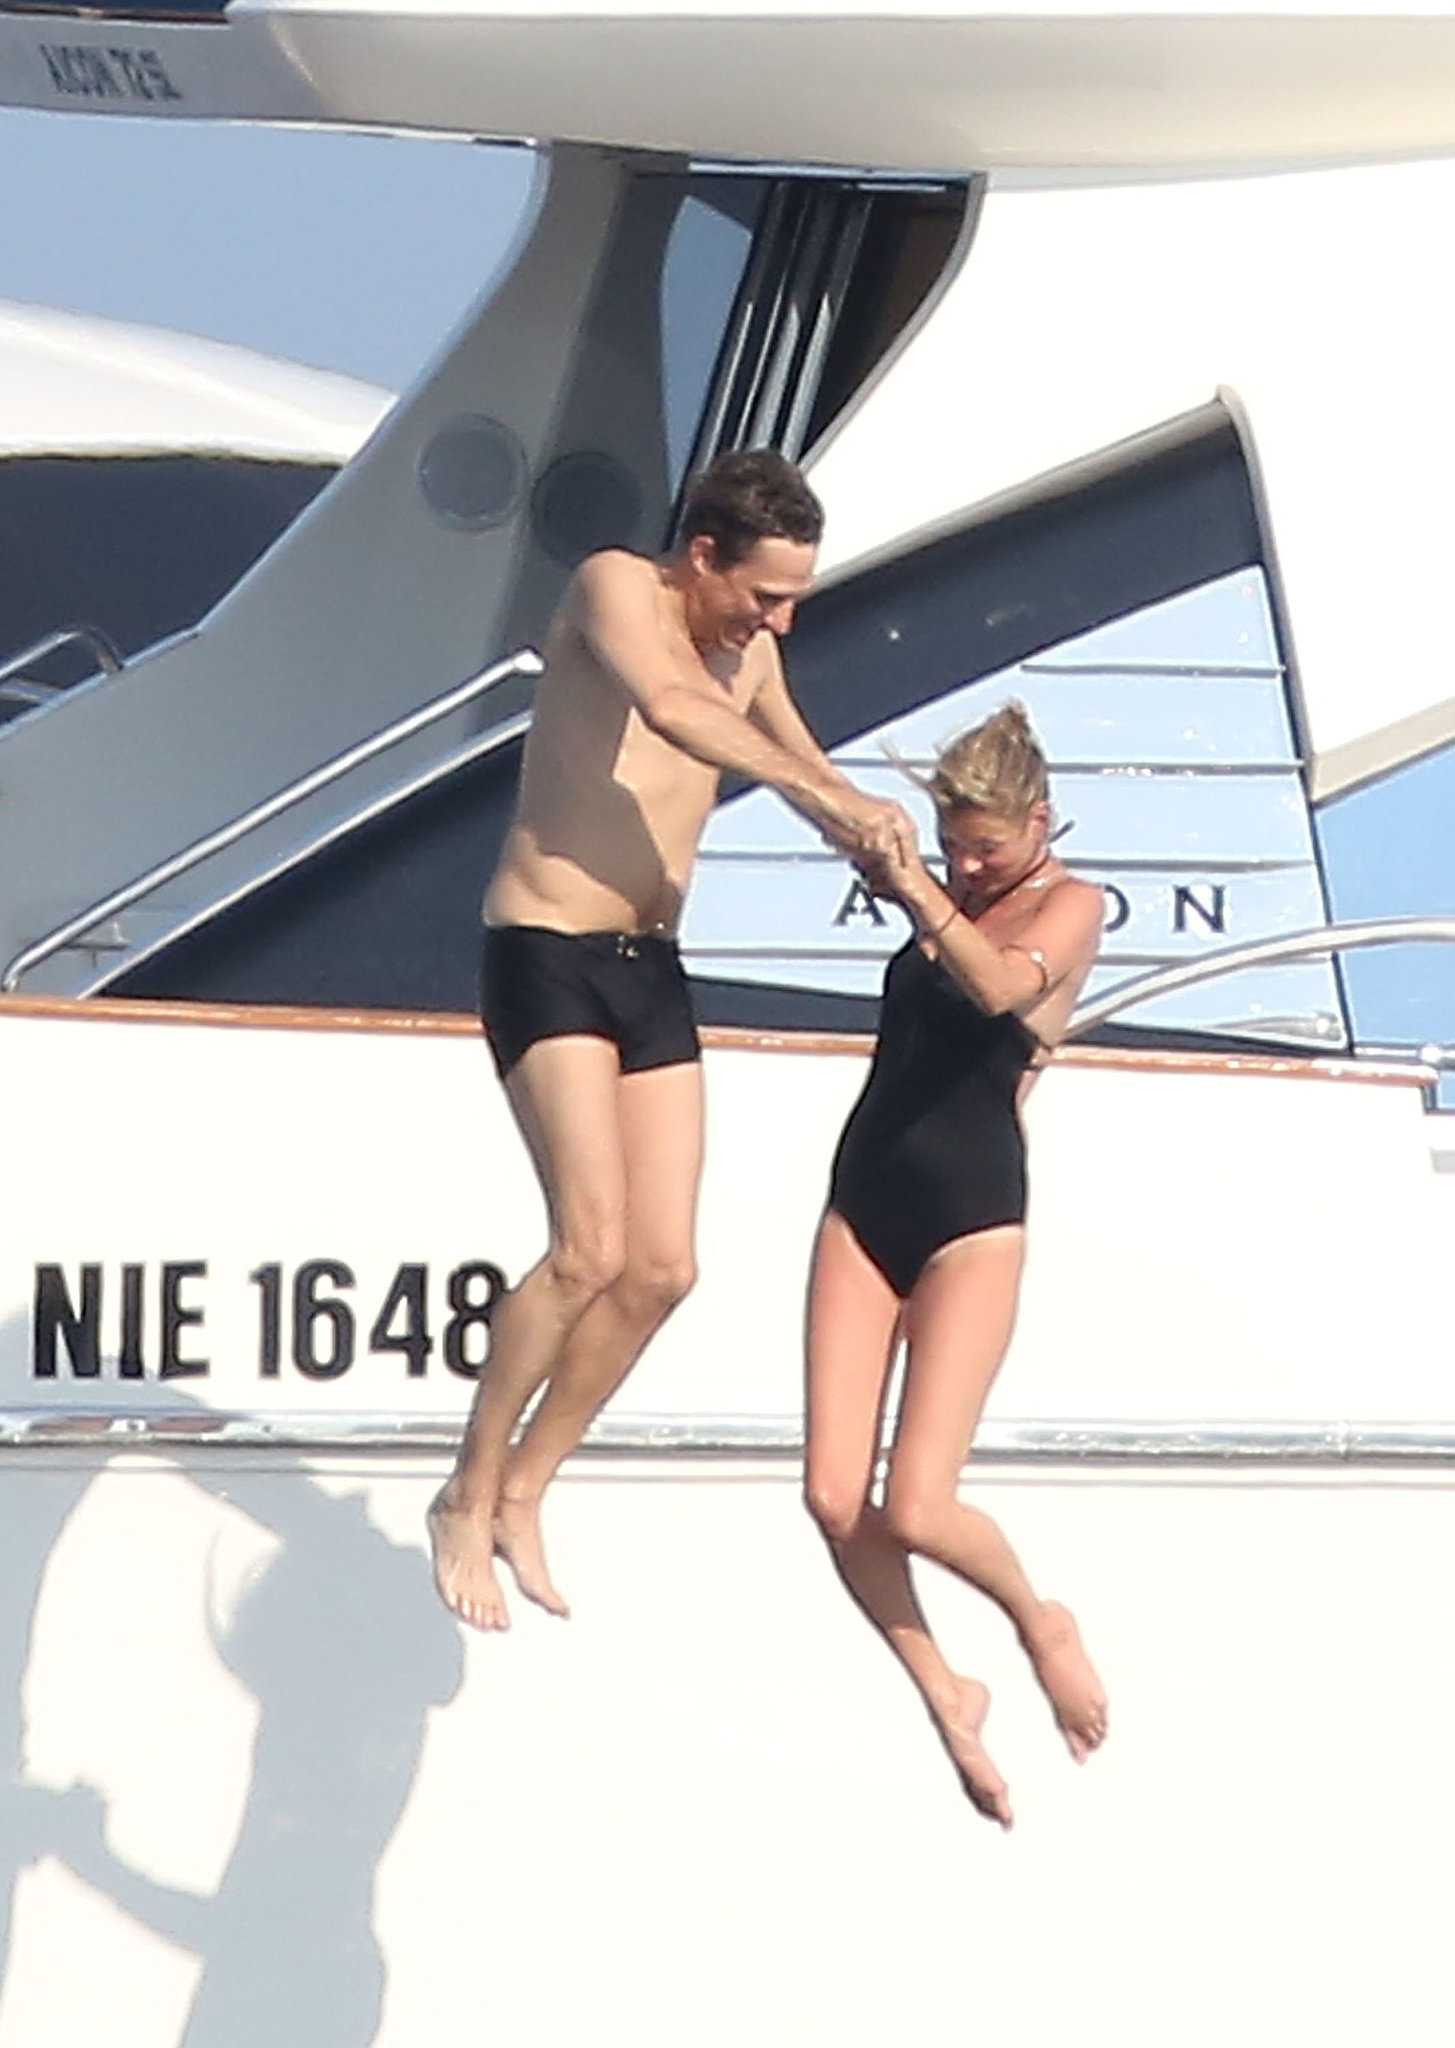 Kate Moss and Jamie Hince jumped off a yacht together during a St. Tropez vacation in July 2012.